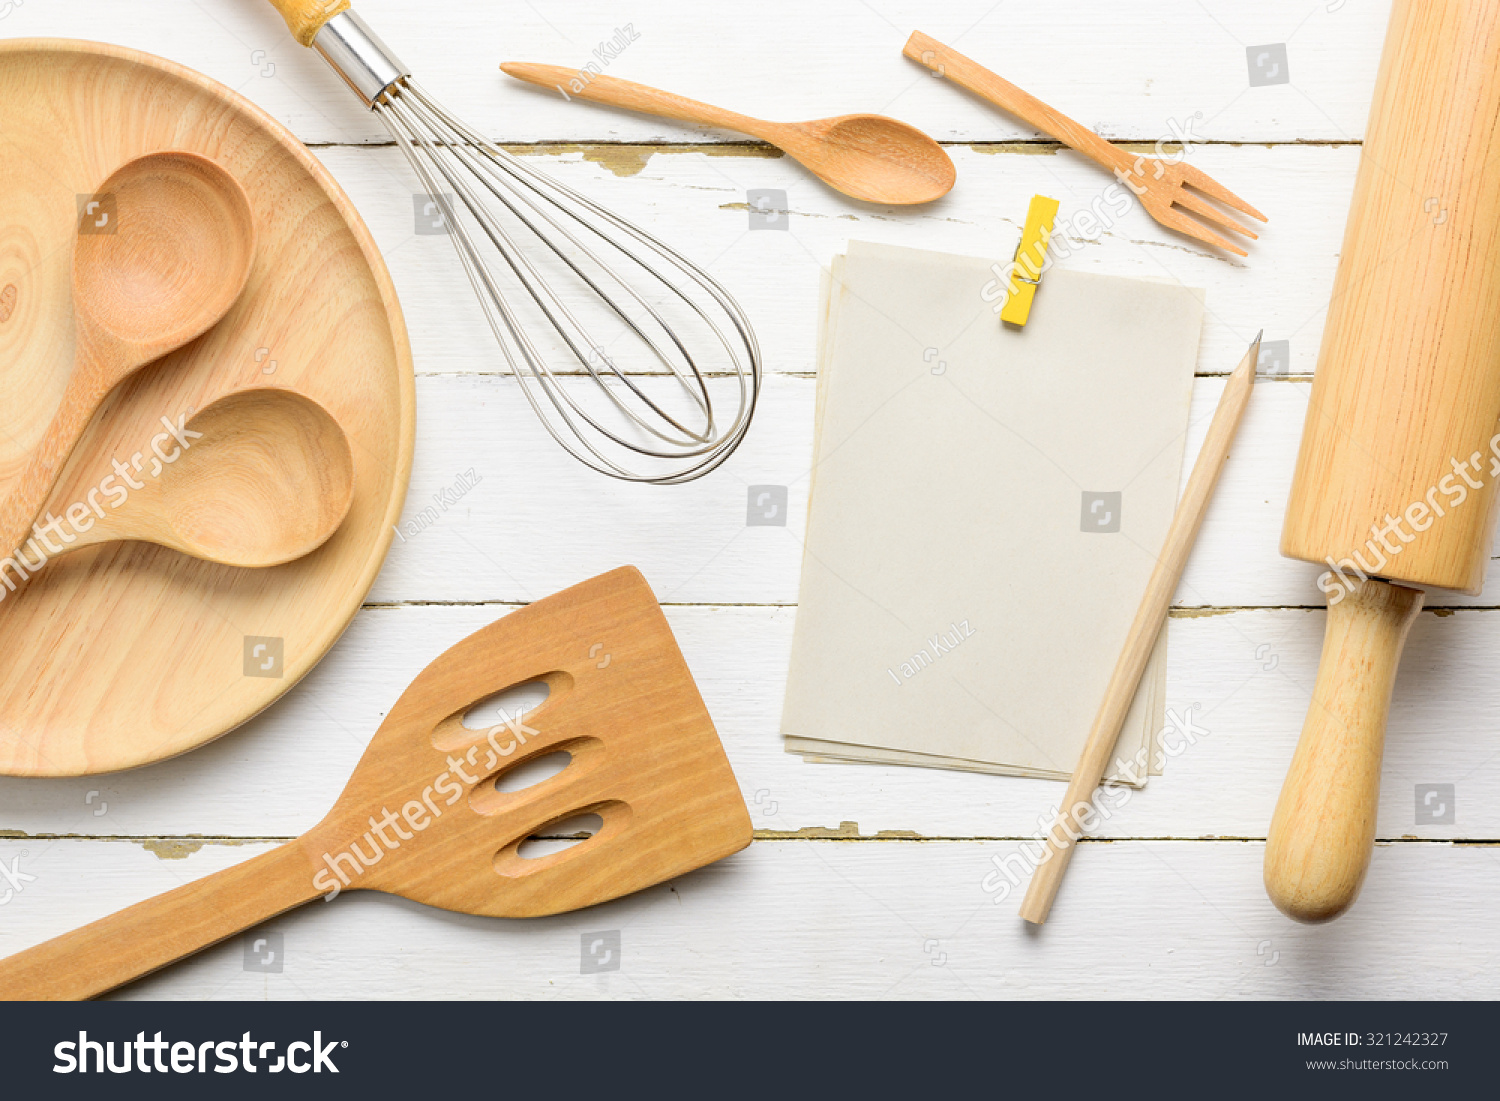 Notebook Write List Menu Wooden Kitchen Stock Photo (Royalty Free ...